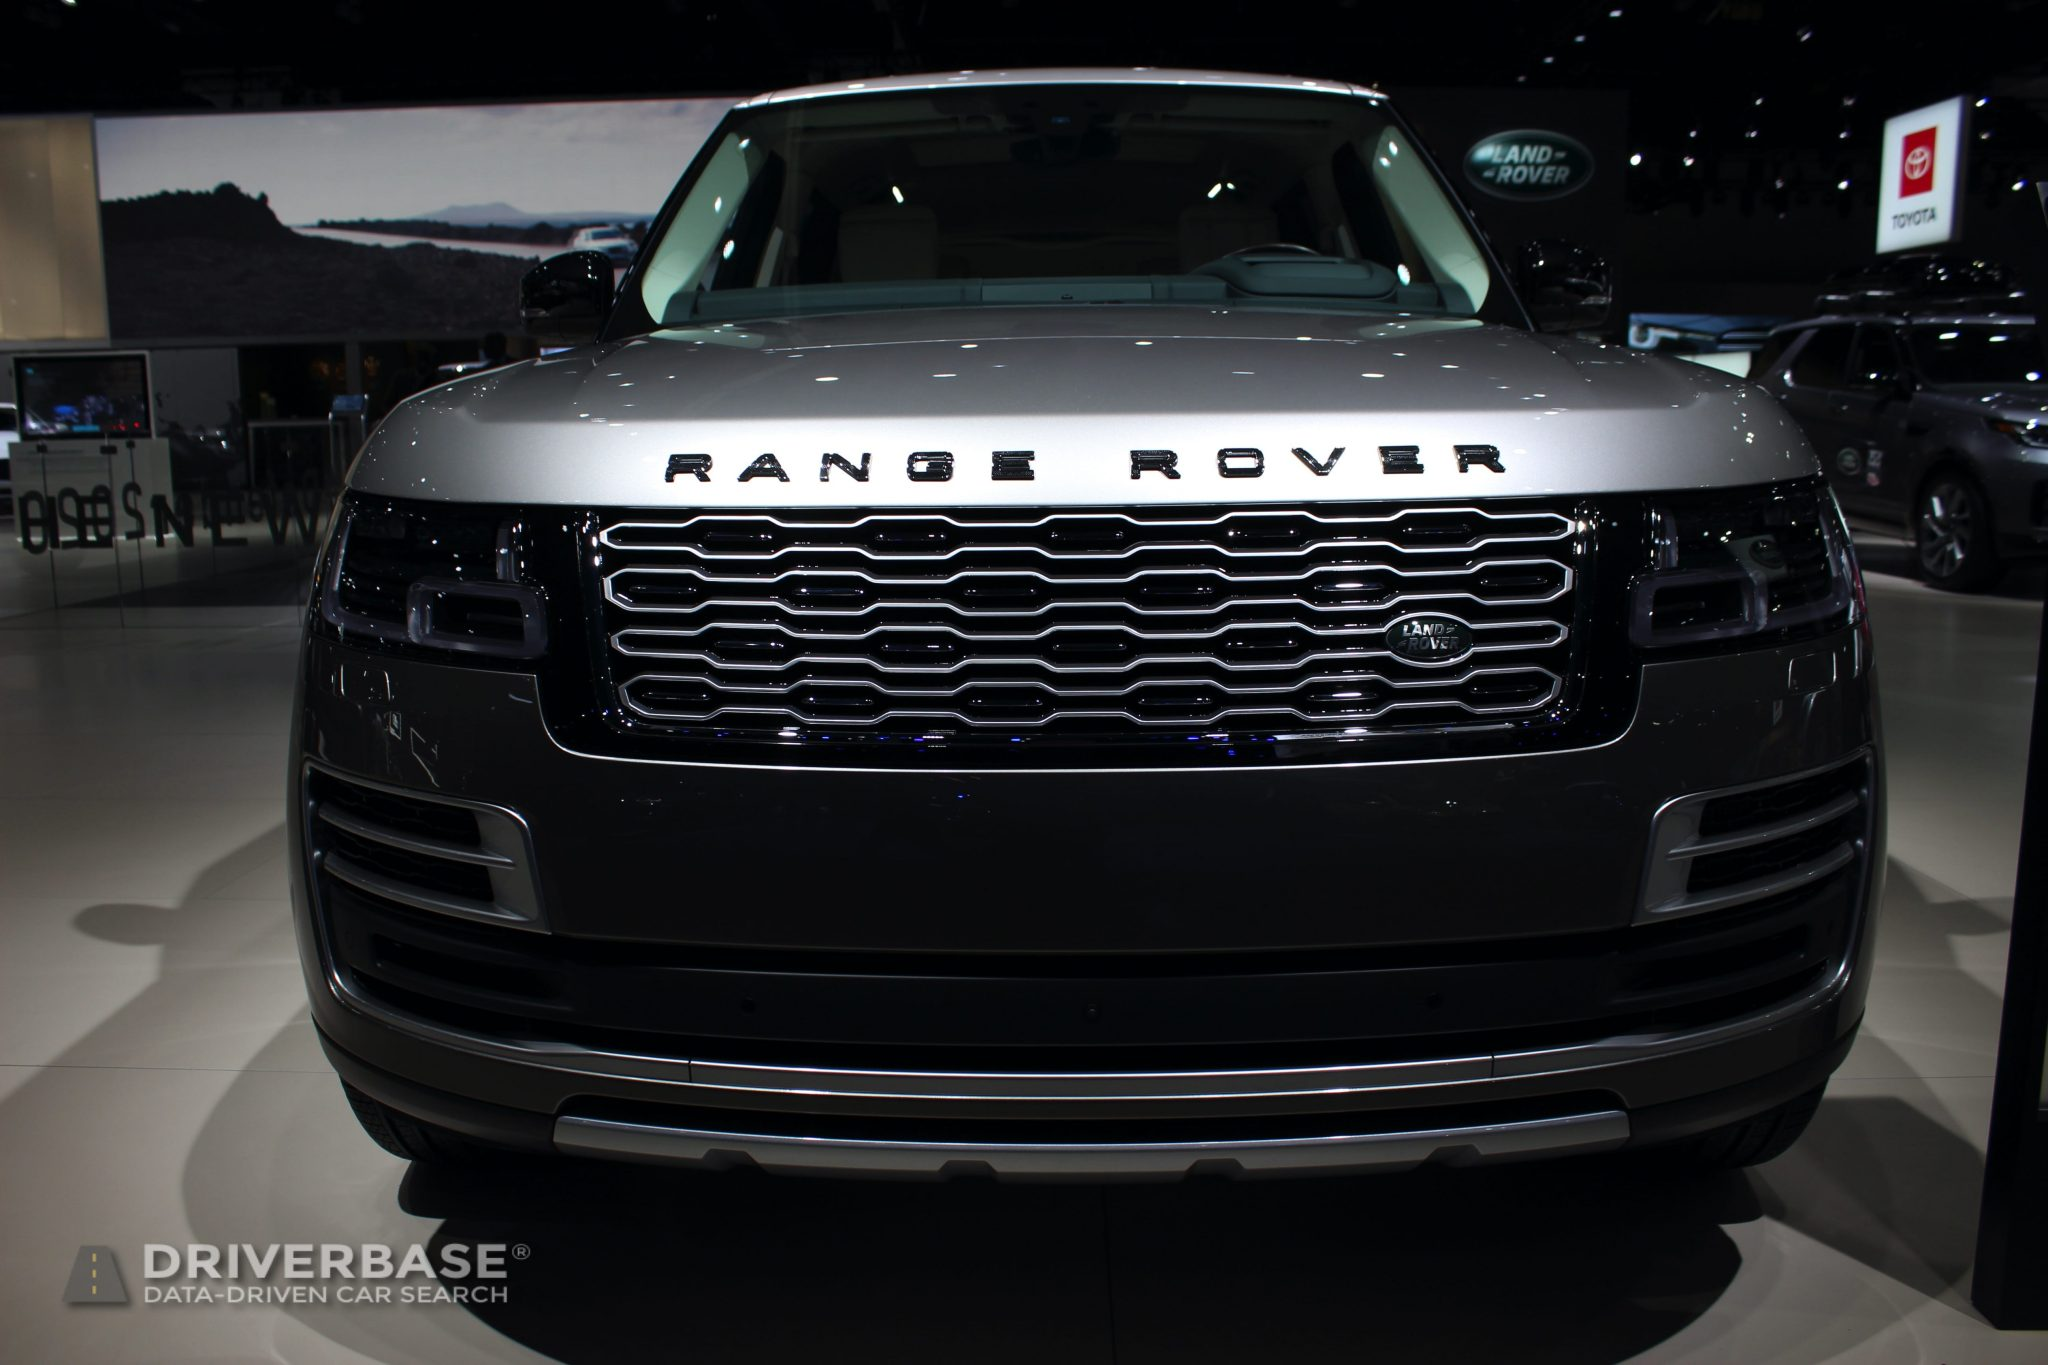 2020 Land Rover Range Rover at the 2019 Los Angeles Auto Show